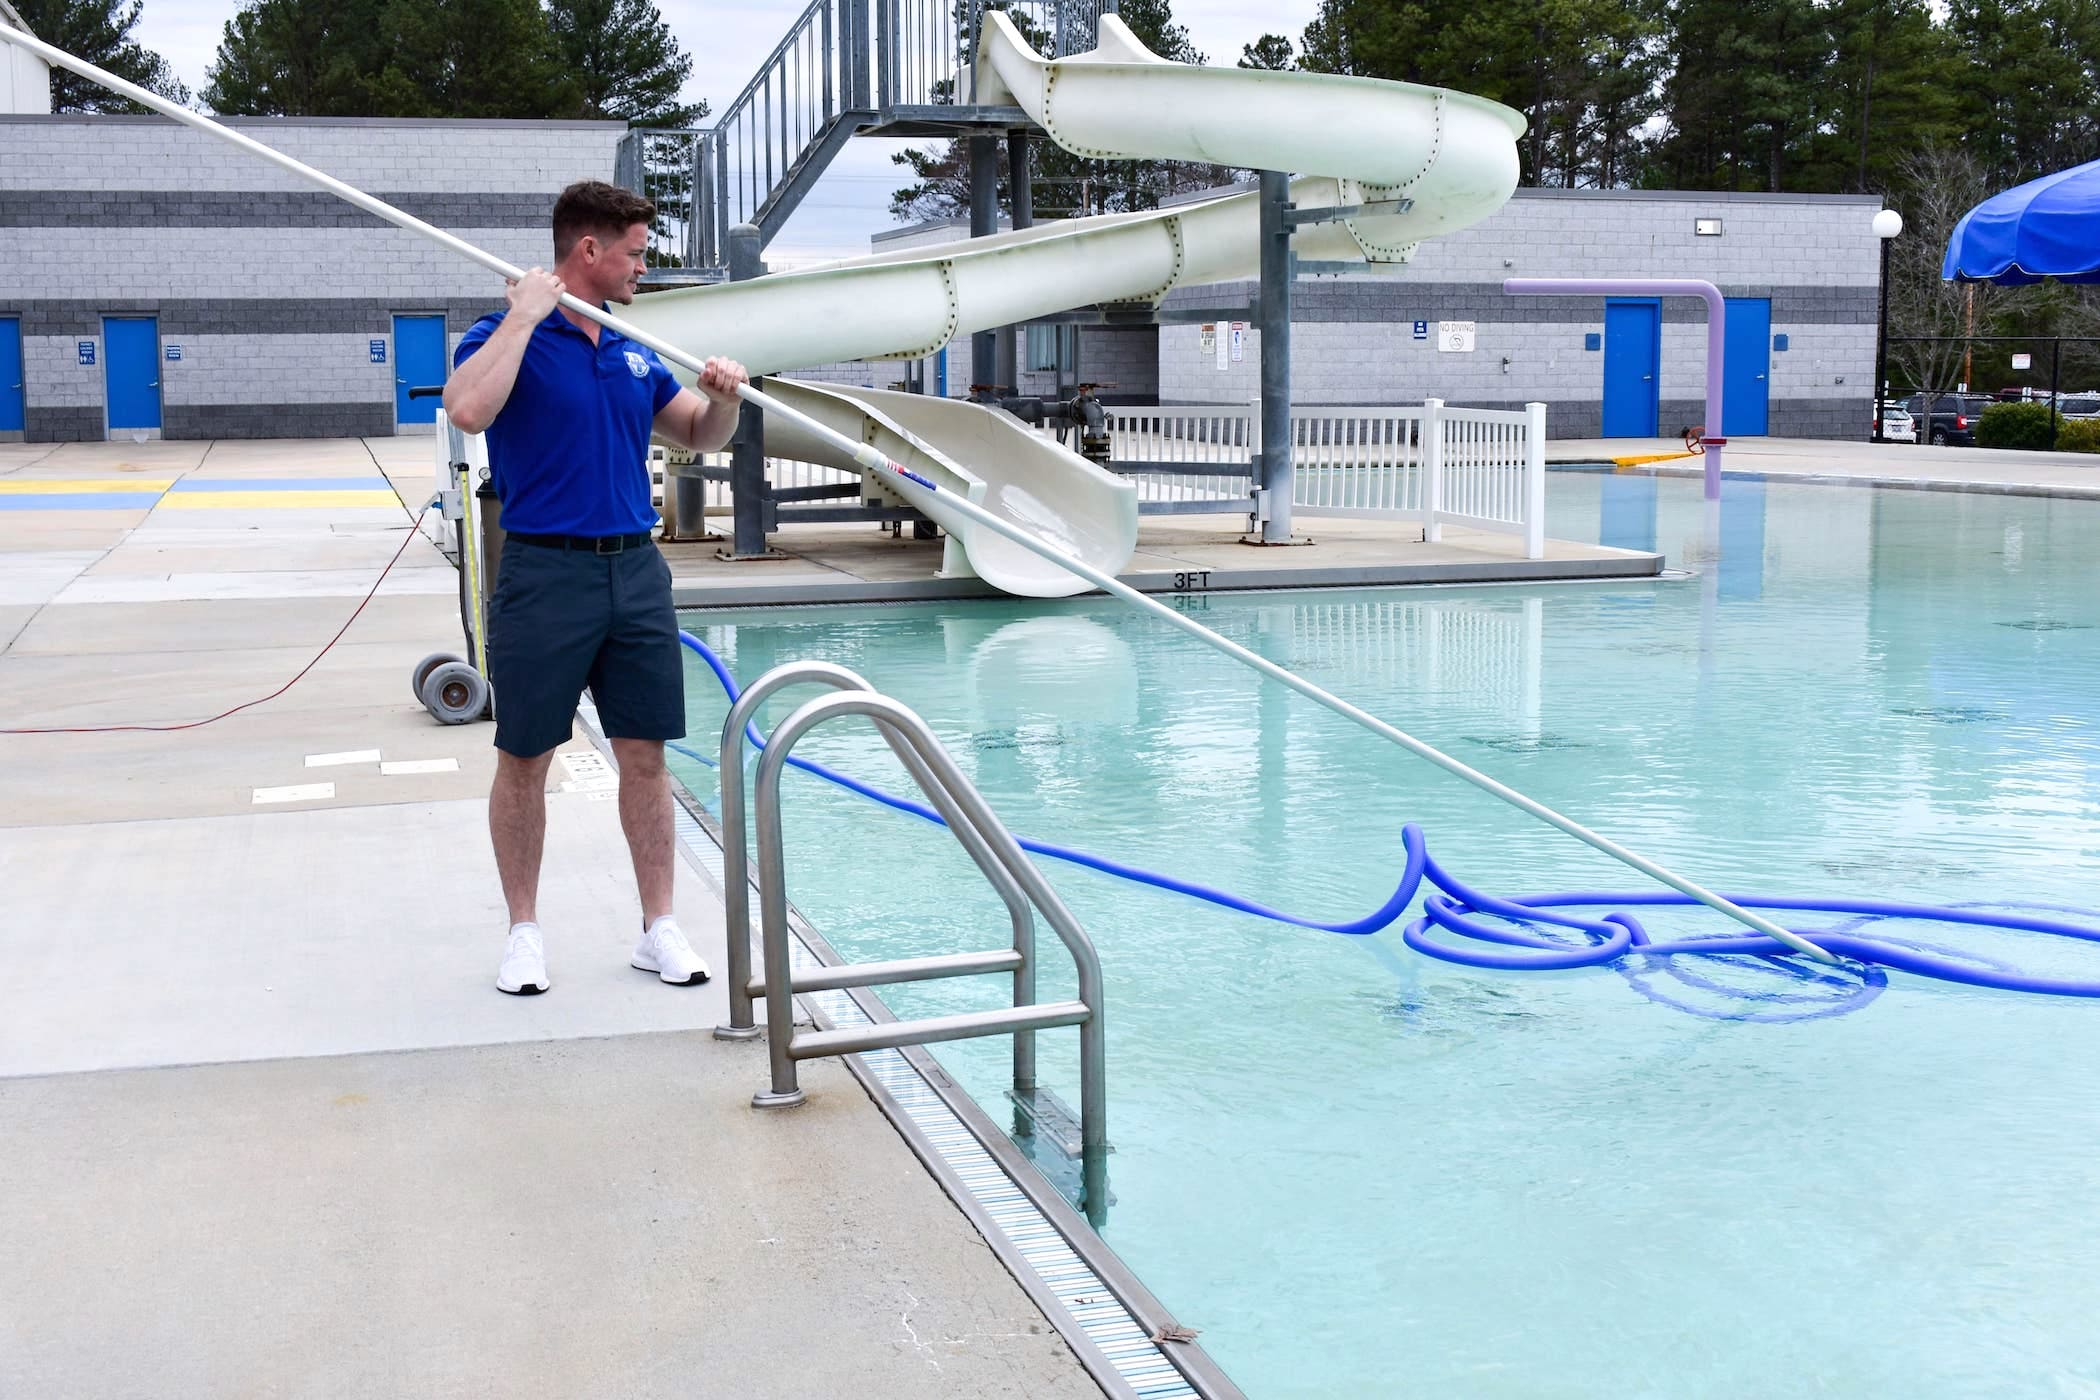 Swimmingpool Maintenance Tips - How to Maintain Your Water Clean